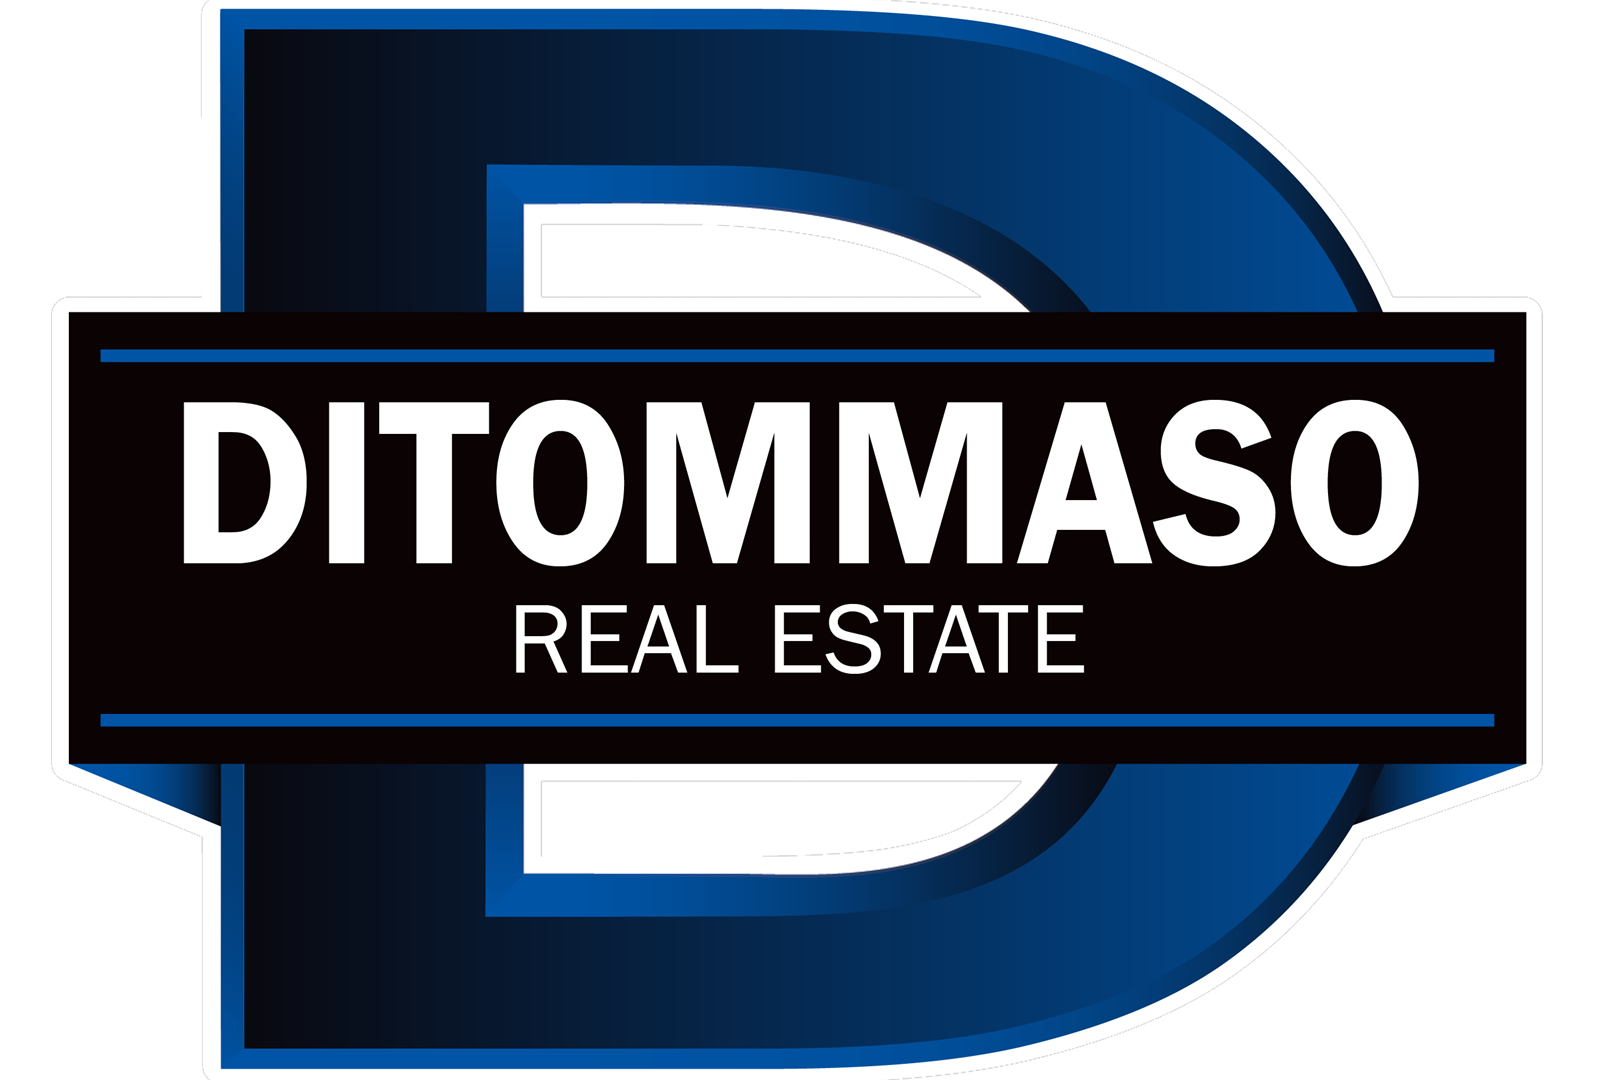 DiTommaso Real Estate